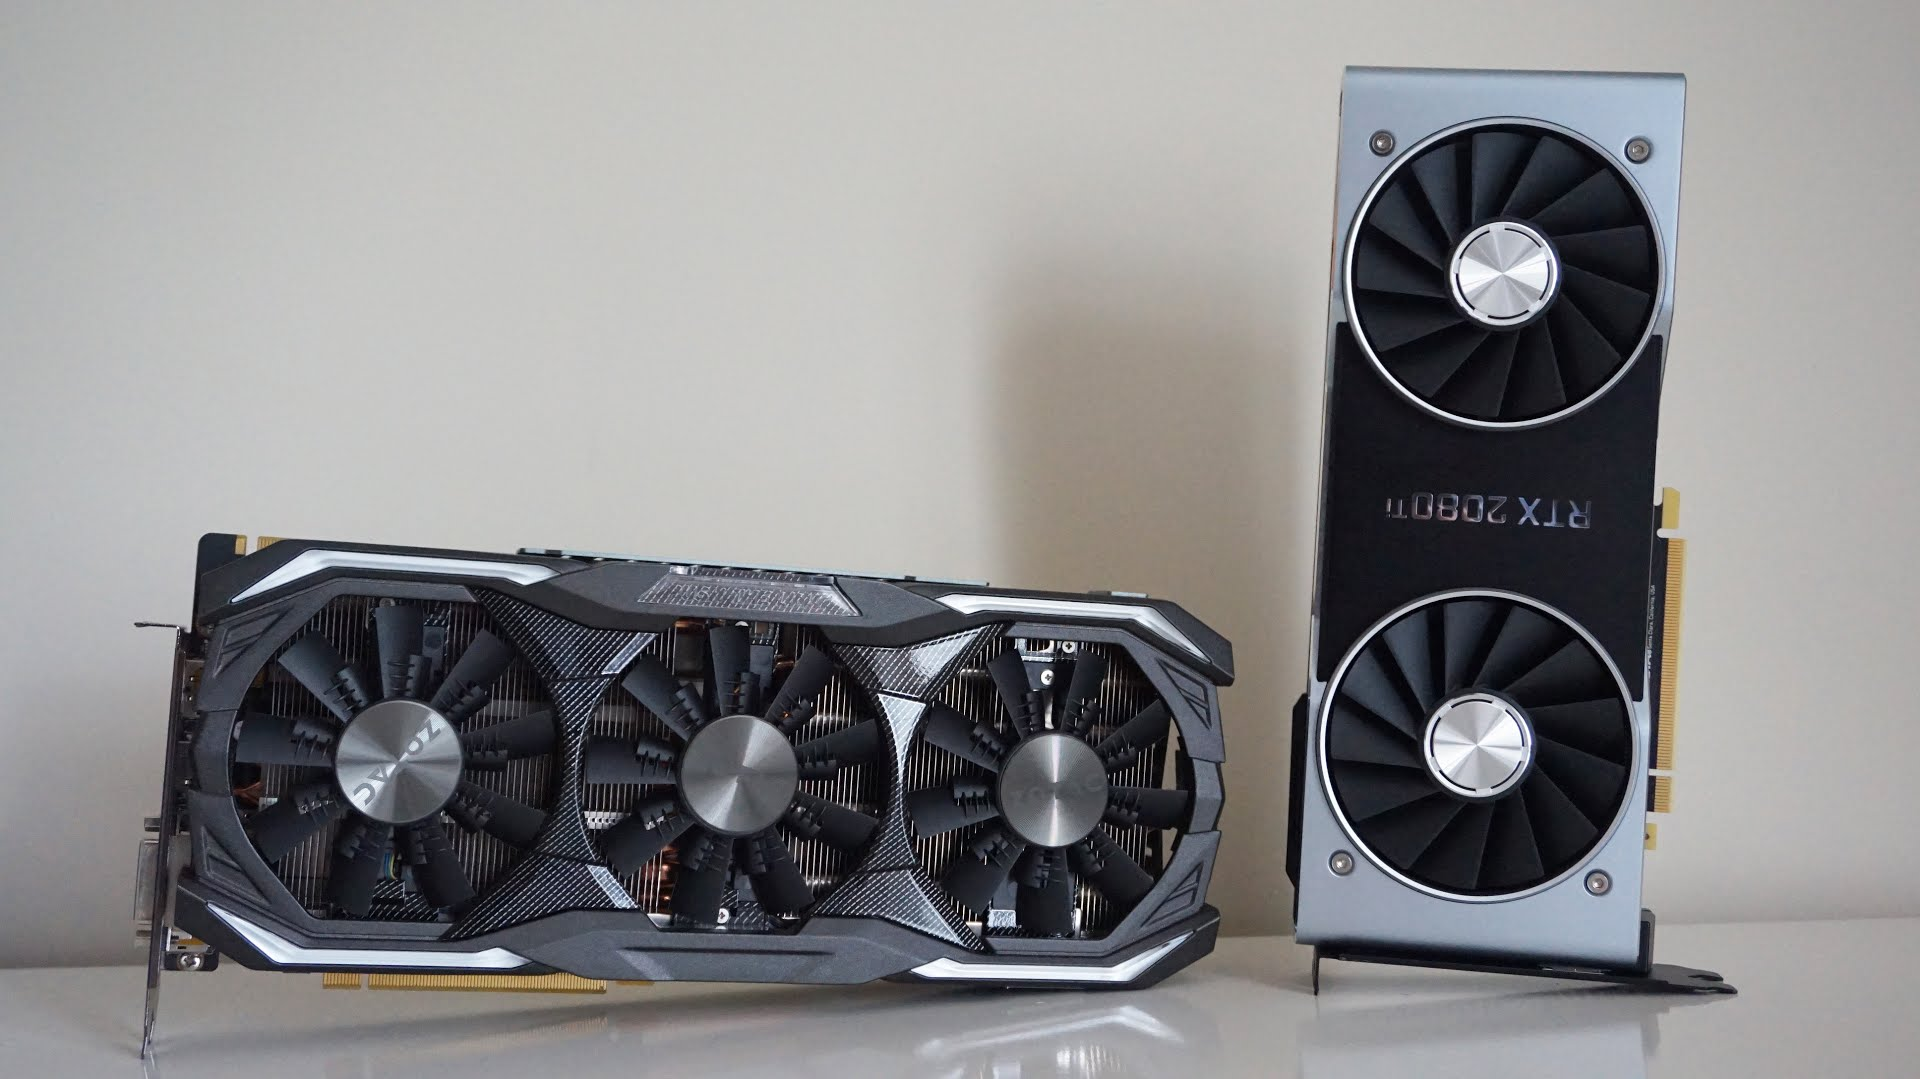 Zotac's GTX 1080 and Nvidia's RTX 2080Ti